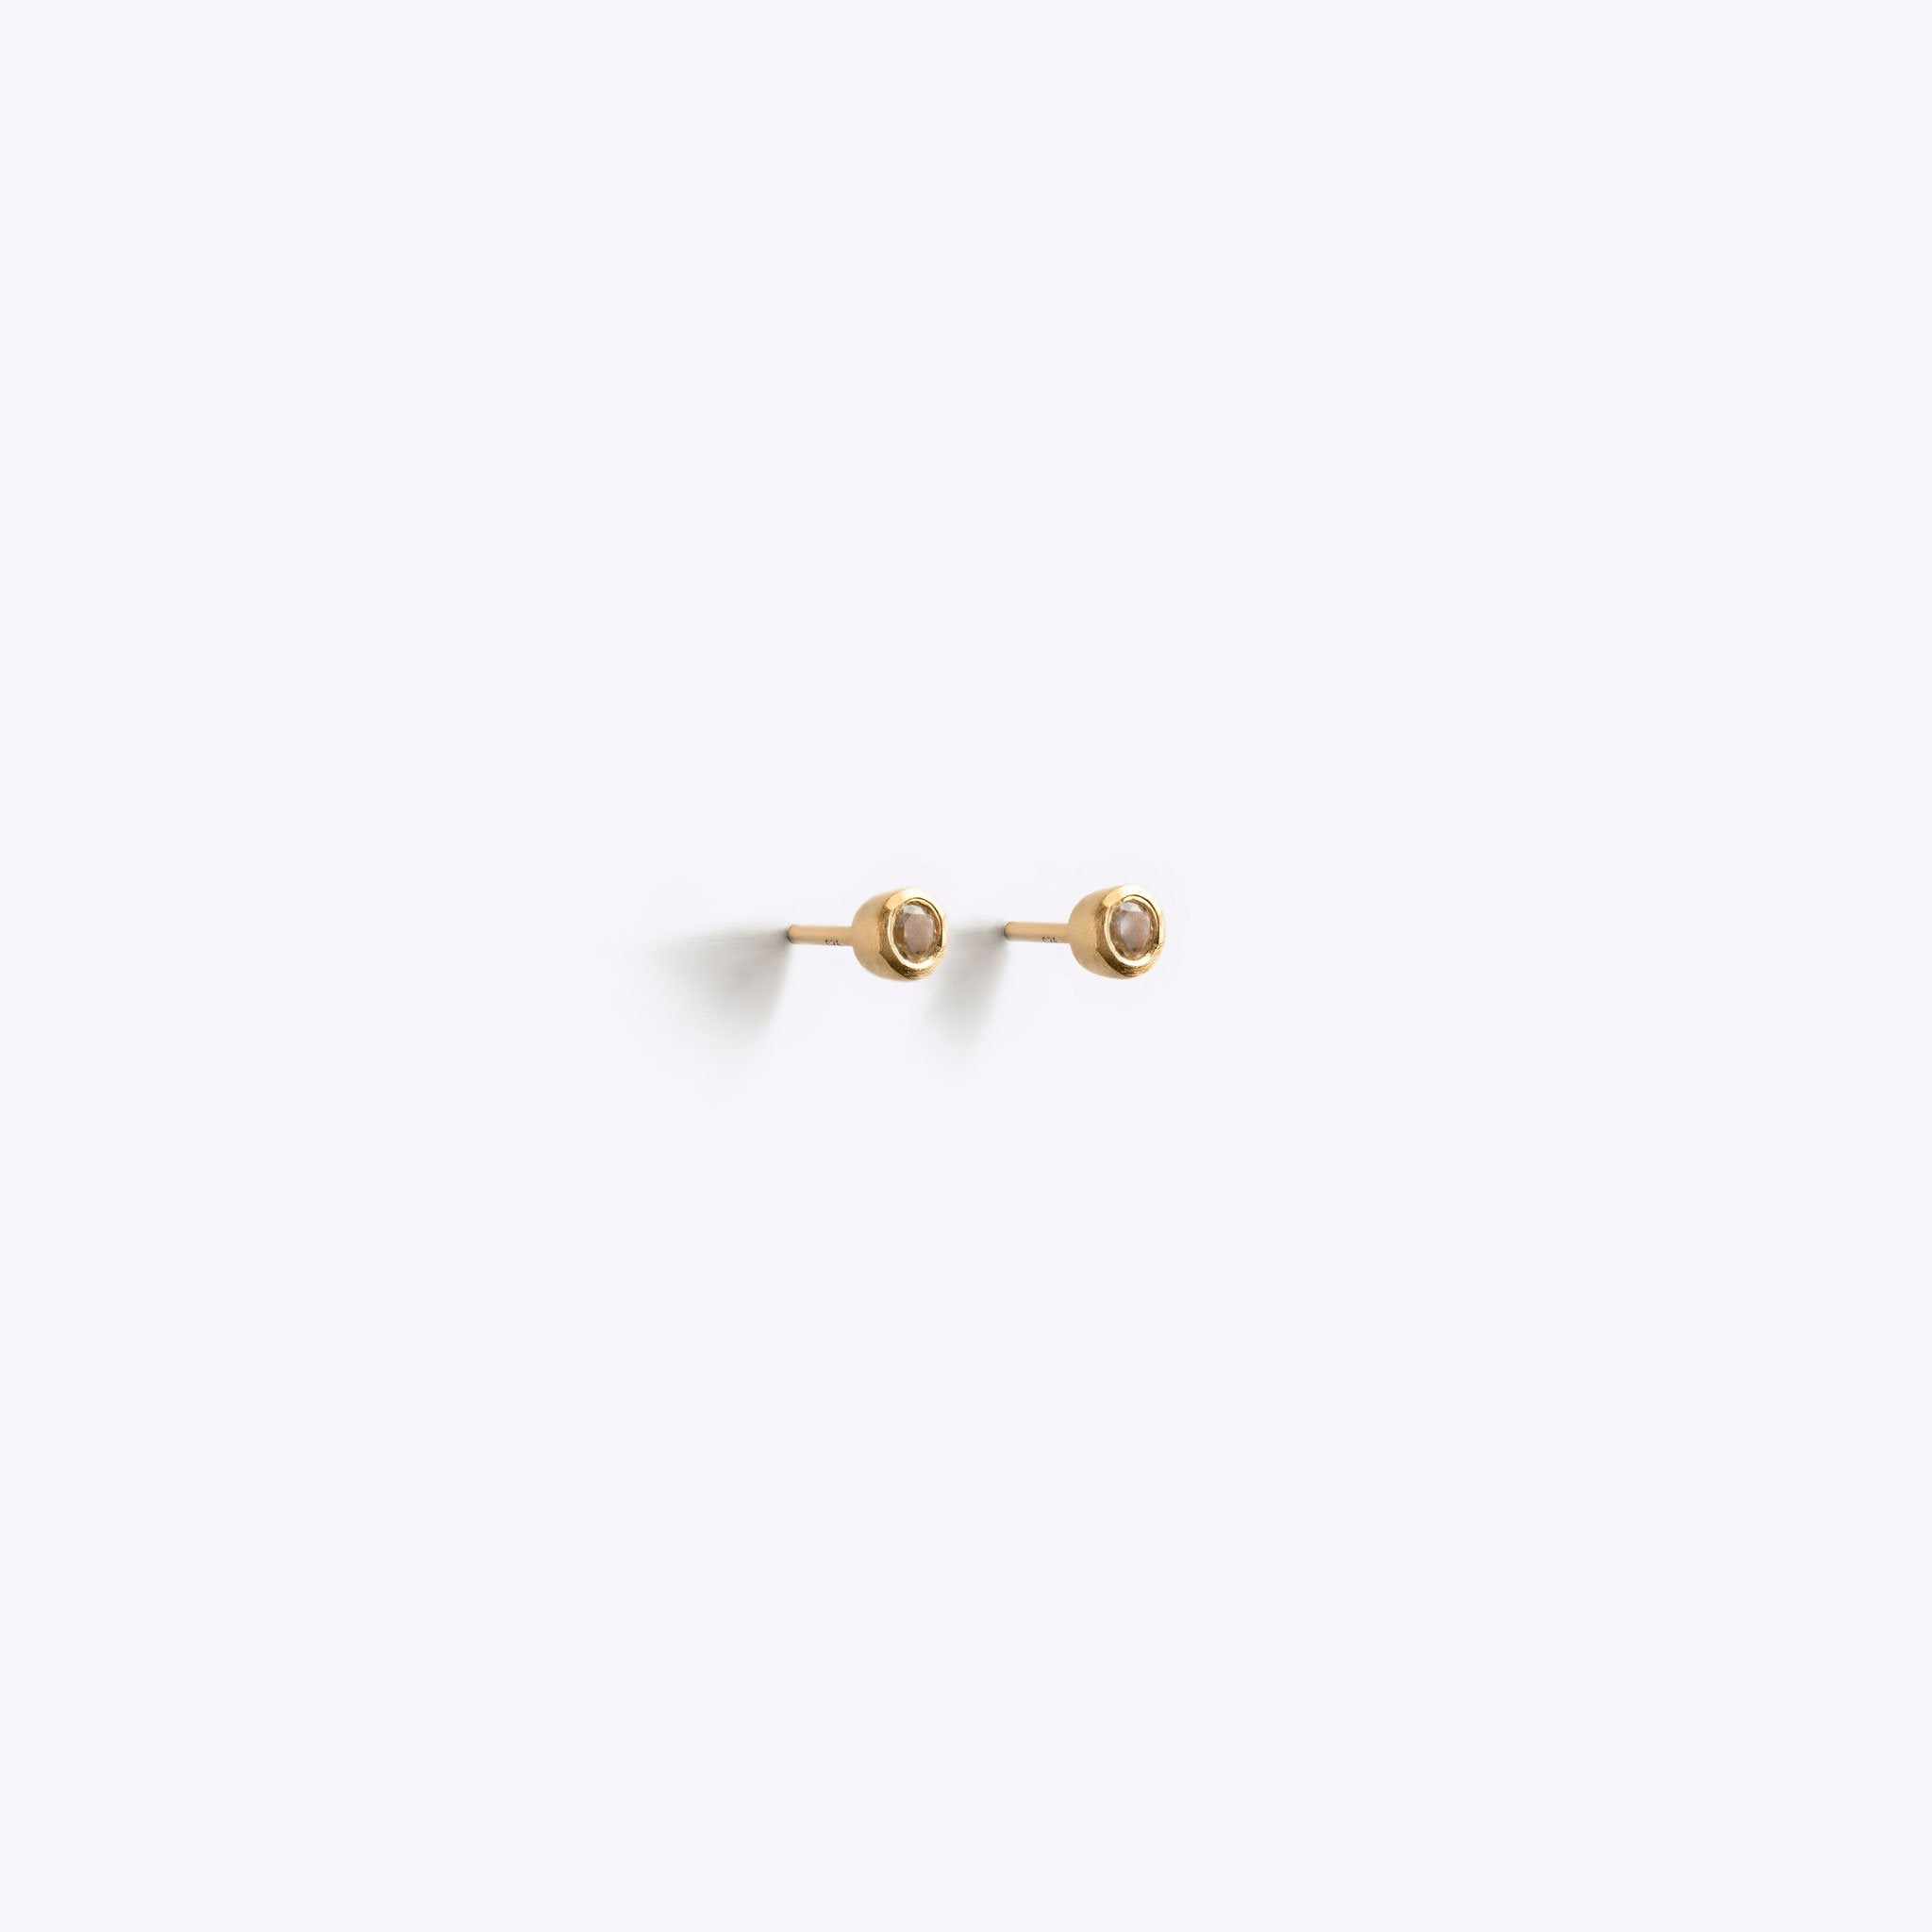 Wanderlust Life Ethically Handmade jewellery made in the UK. Minimalist gold and fine cord jewellery. February birthstone gold stud earrings. Mint amethyst gemstone earrings.